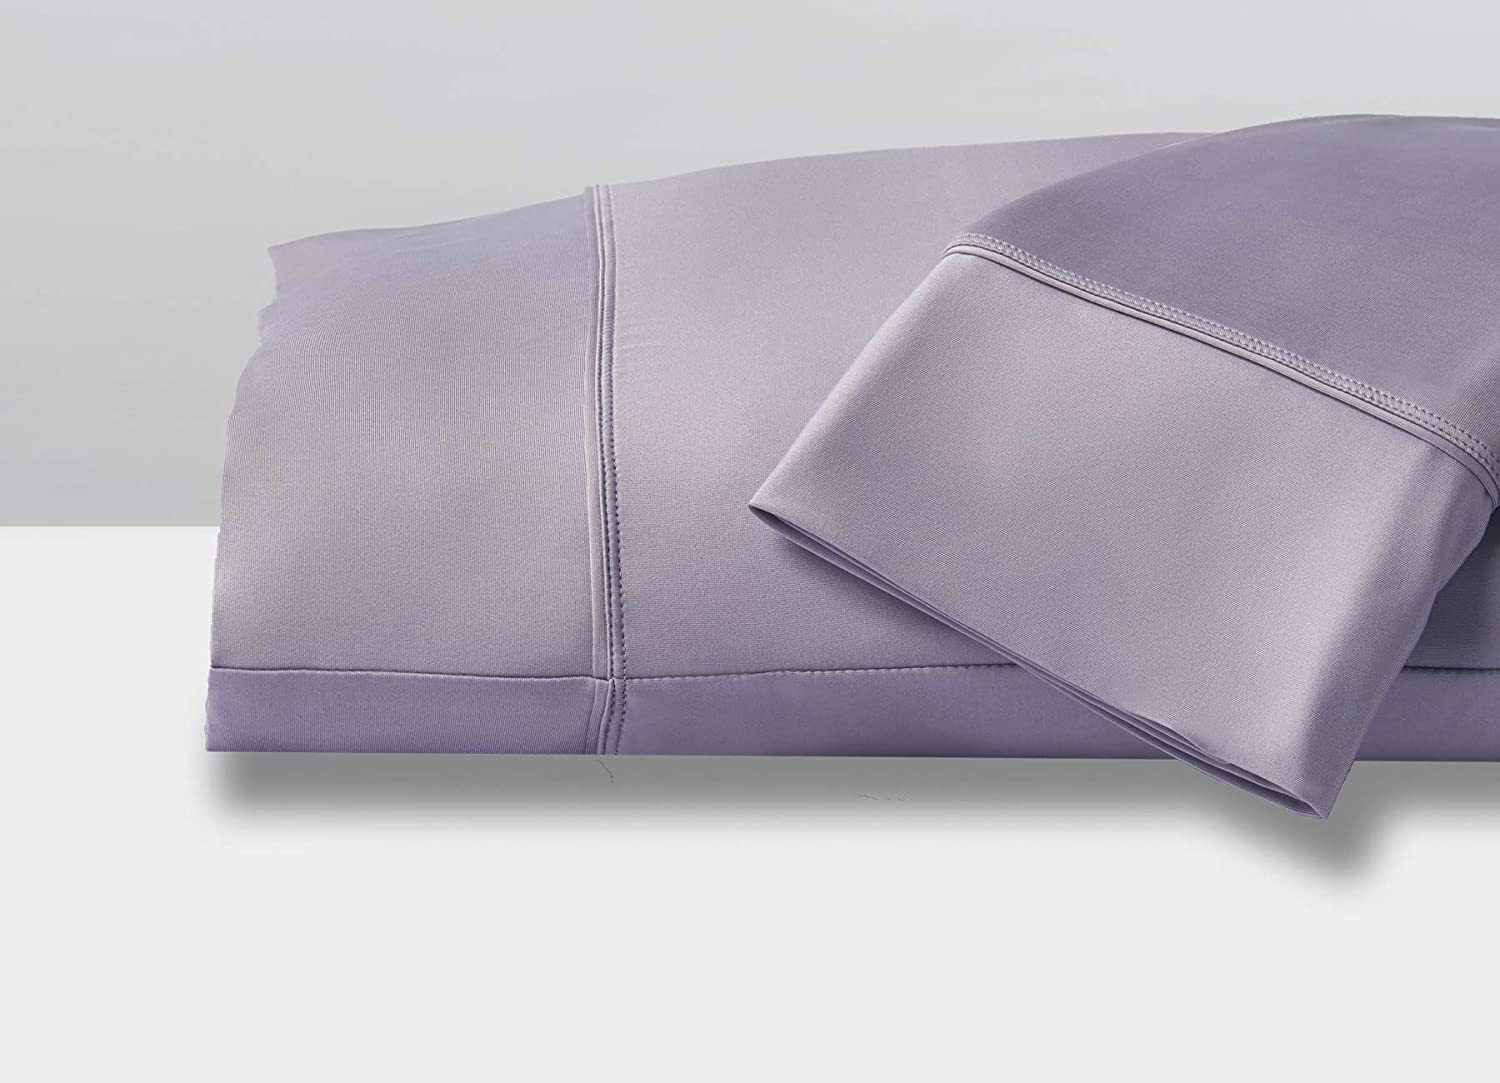 SHEEX - Original Performance Pillowcases (Set of 2), Ultra-Soft Fabric Transfers Body Heat and Breathes Better Than Traditional Cotton - Lavender, Standard